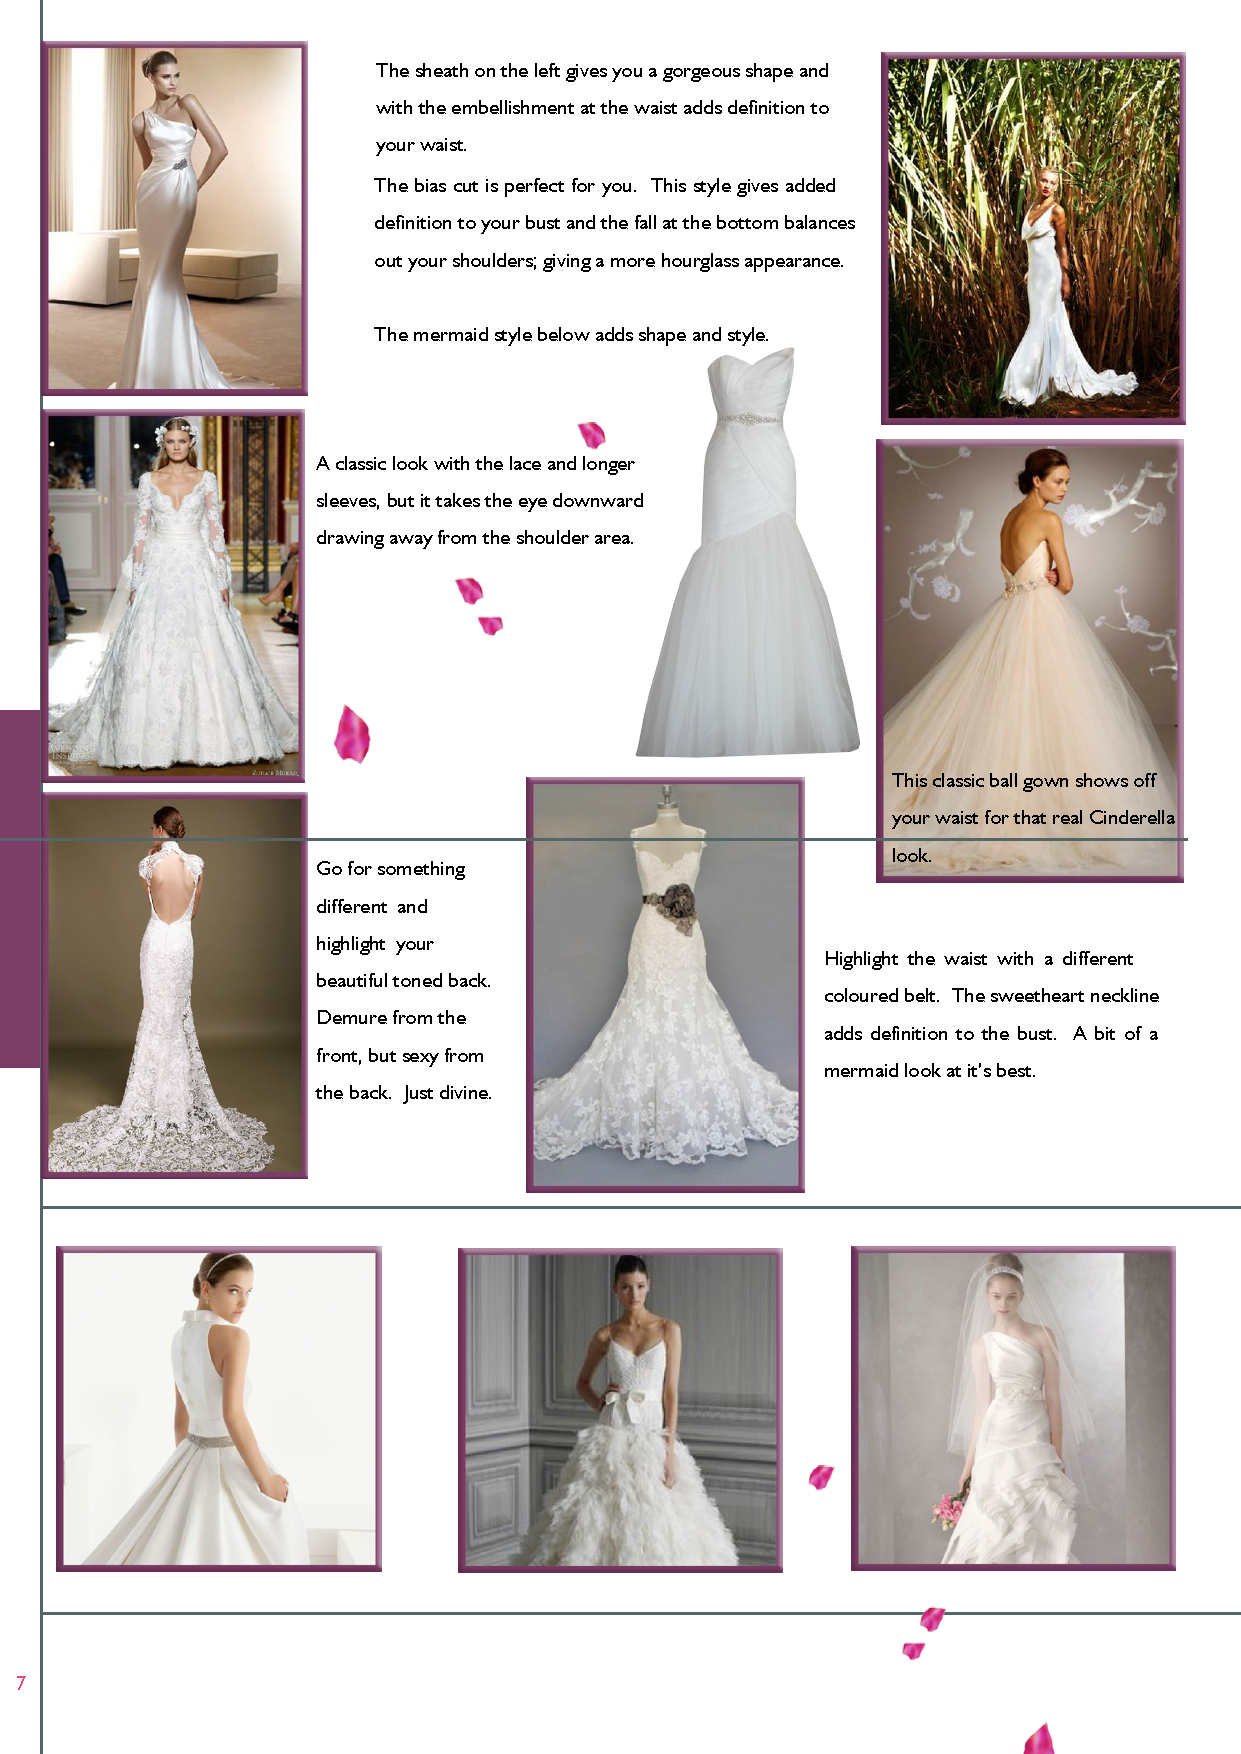 Grace Inverted Triangle Body Shape Bridal Gown Suggestions Weddingdaystyle Weddinggowns Weddings Styleguide Bodyshapeguide [ 1754 x 1241 Pixel ]